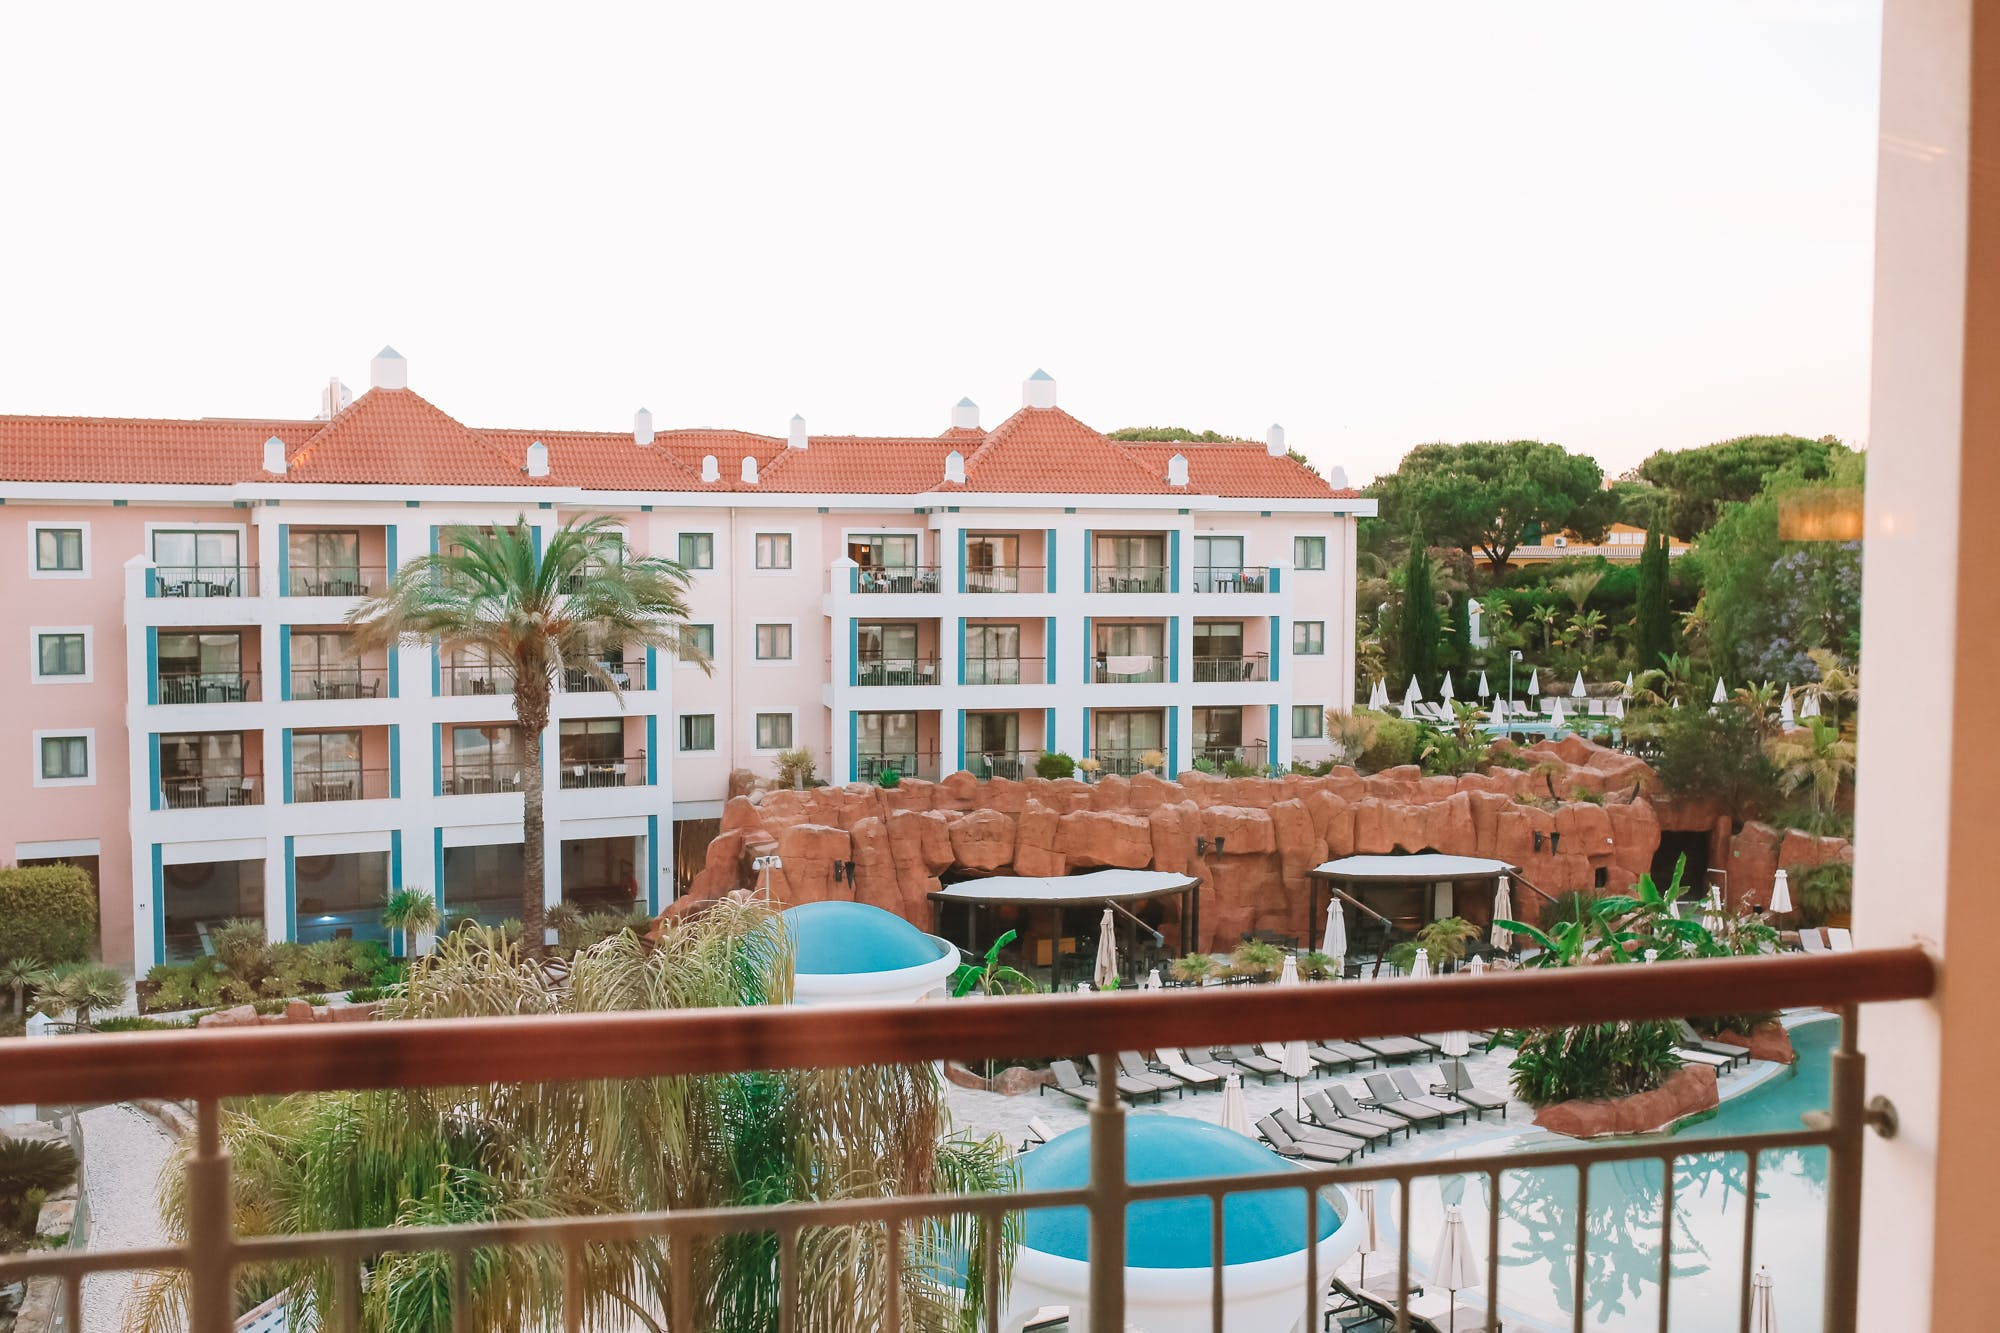 Balcony views from our room at Hilton Vilamoura As Cascatas Golf Resort & Spa